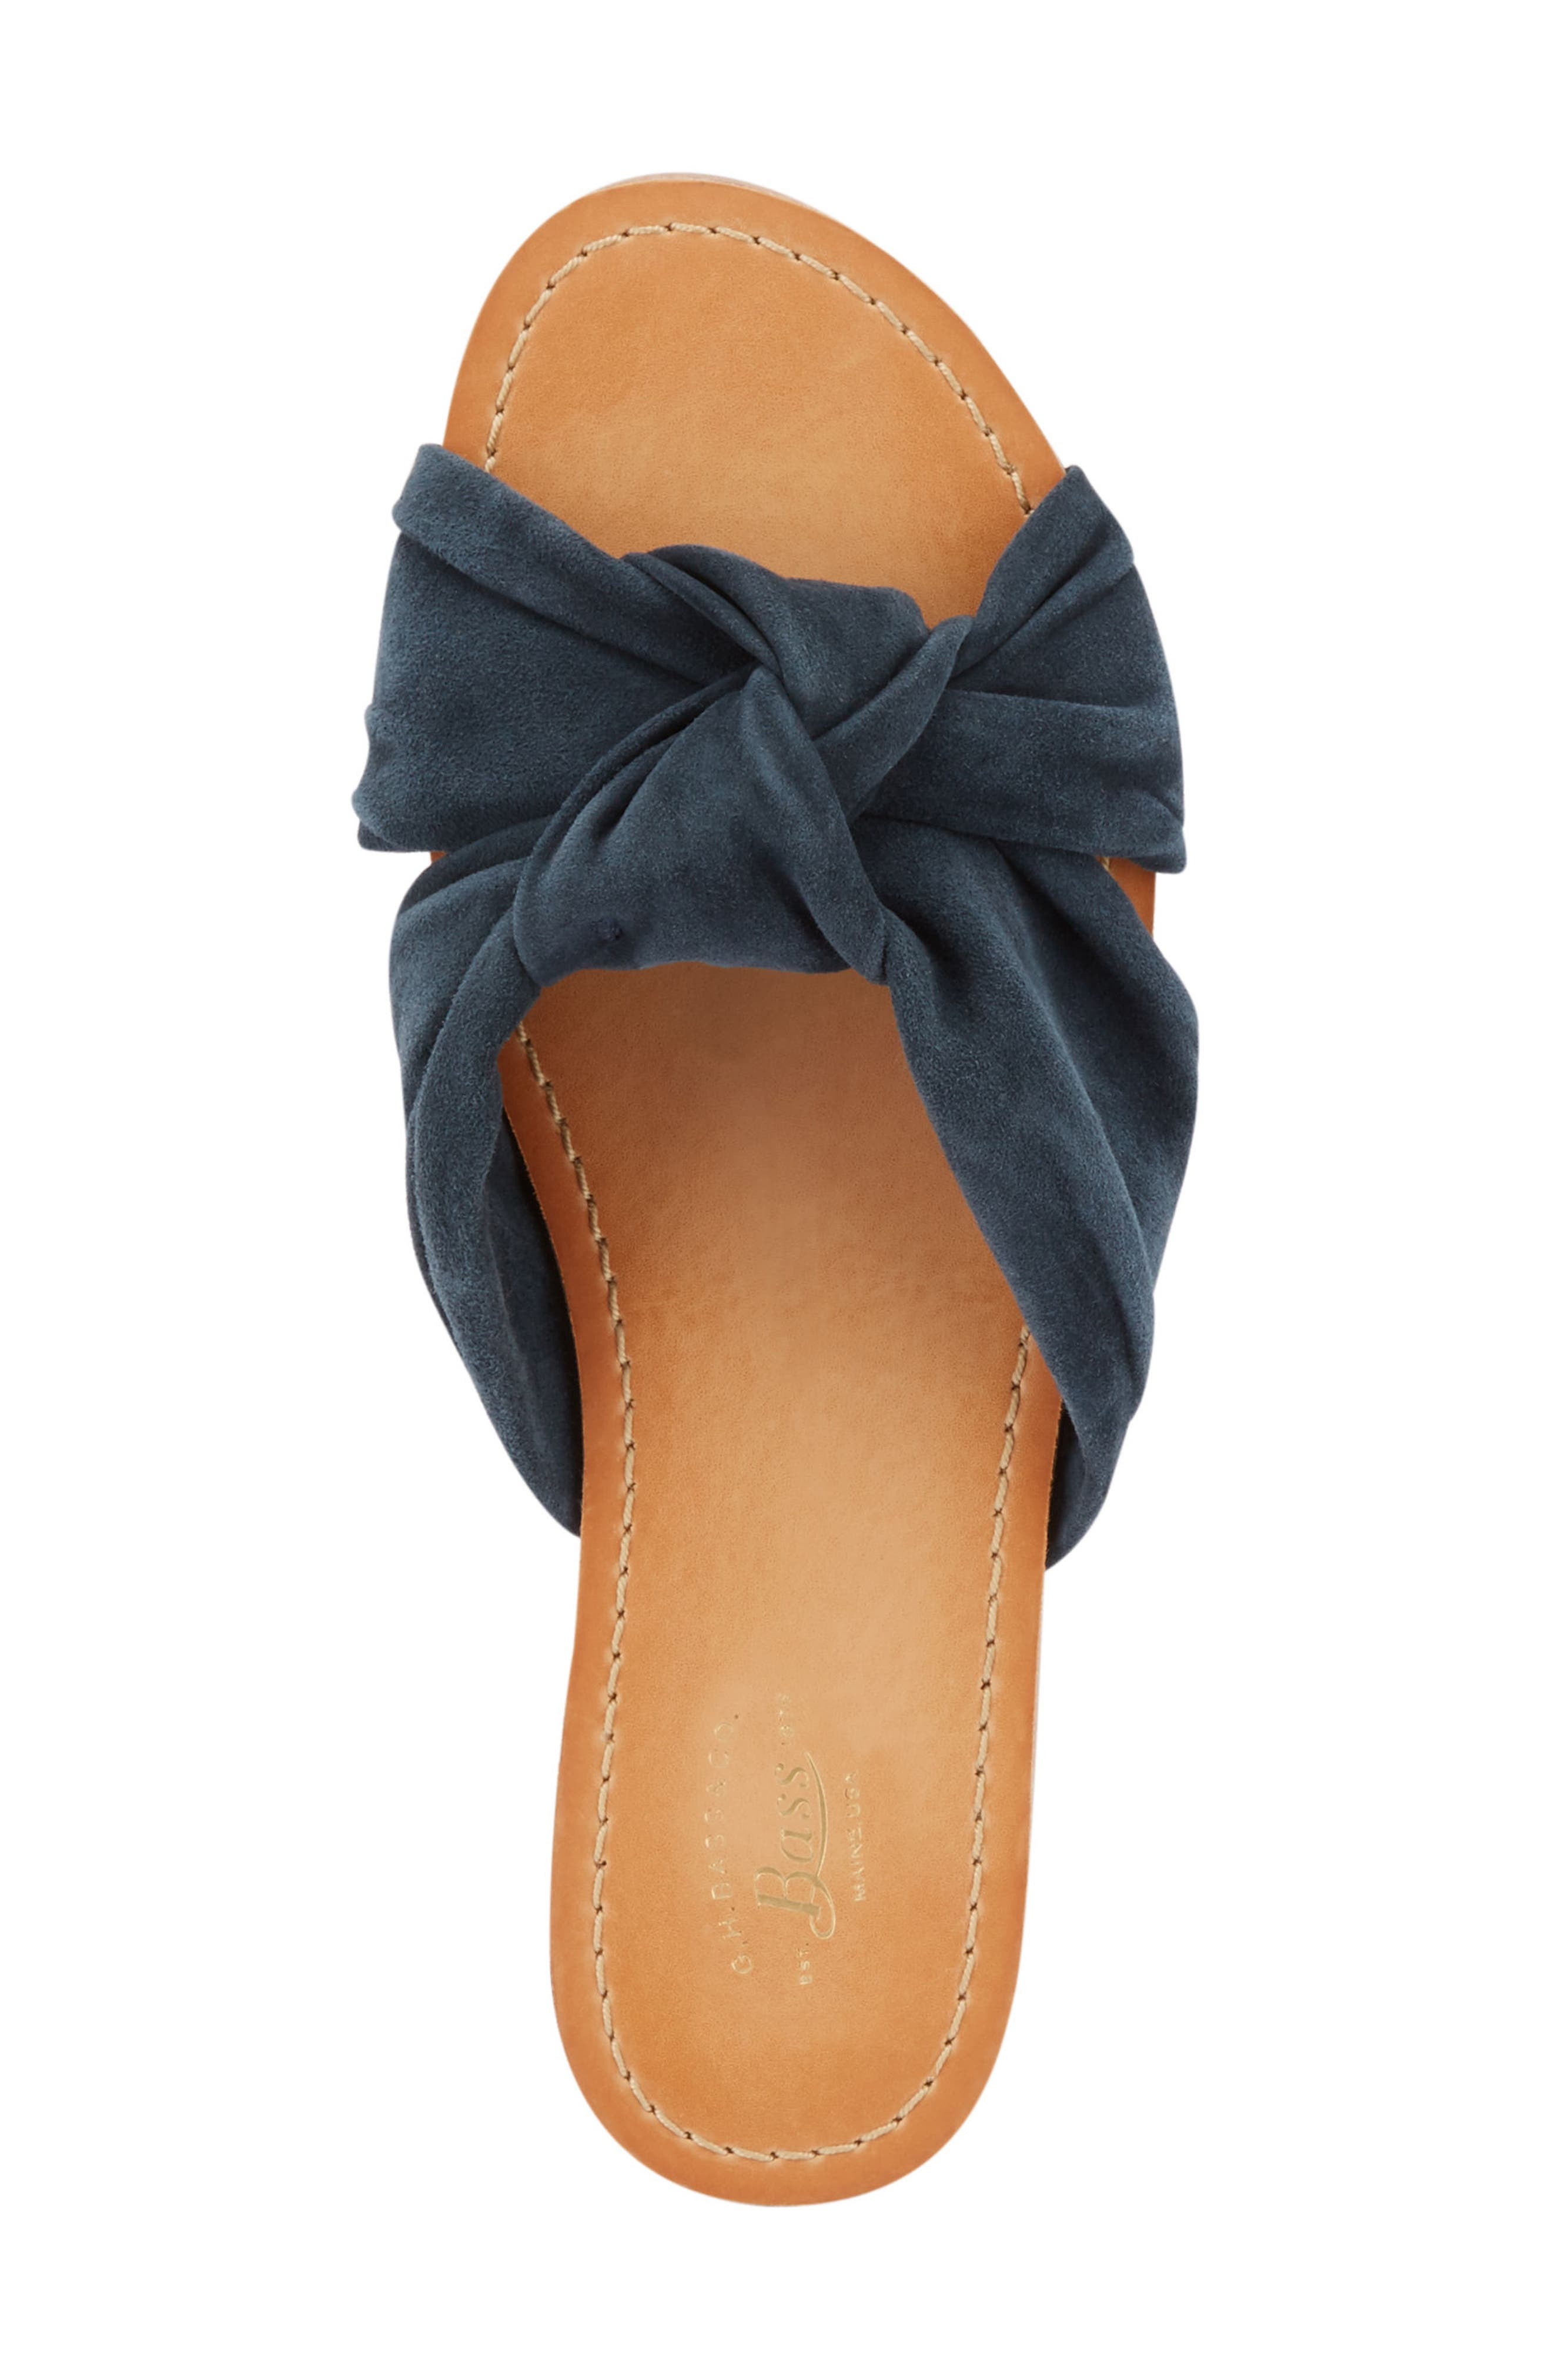 Sophie Knotted Bow Sandal,                             Alternate thumbnail 5, color,                             Navy Suede